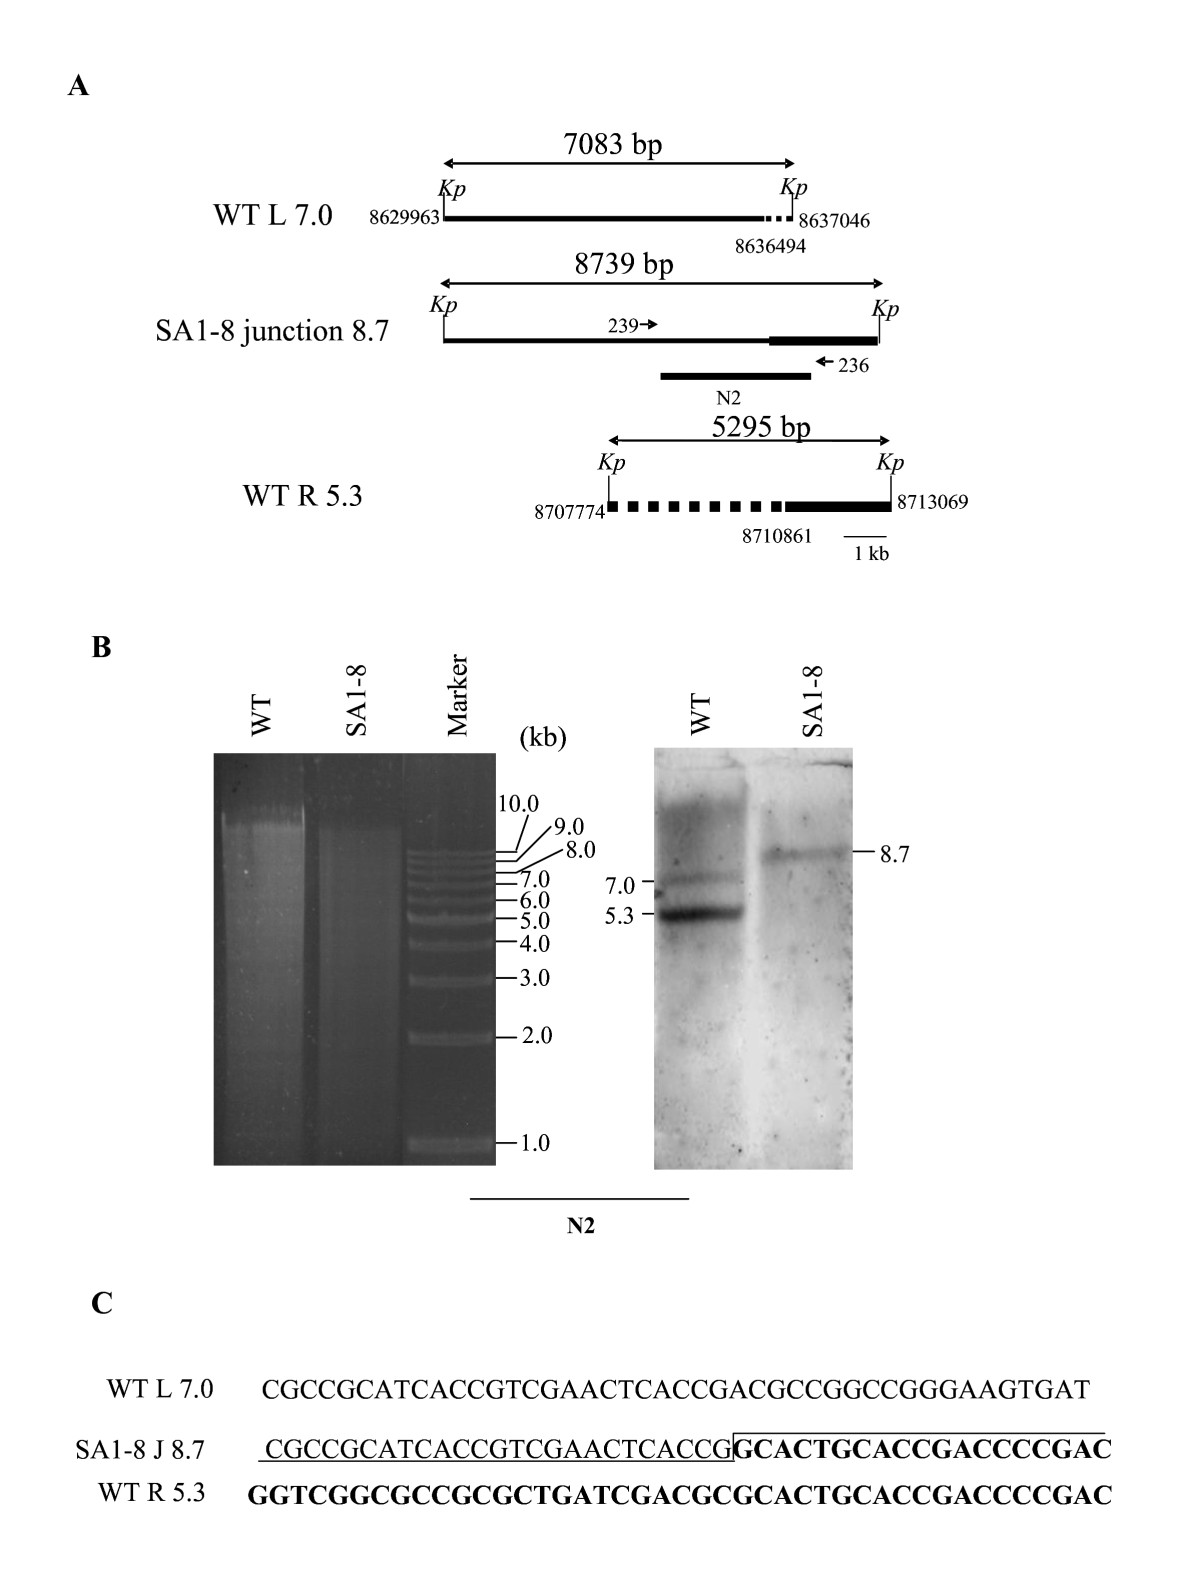 https://static-content.springer.com/image/art%3A10.1186%2F1471-2180-10-198/MediaObjects/12866_2010_Article_1154_Fig5_HTML.jpg